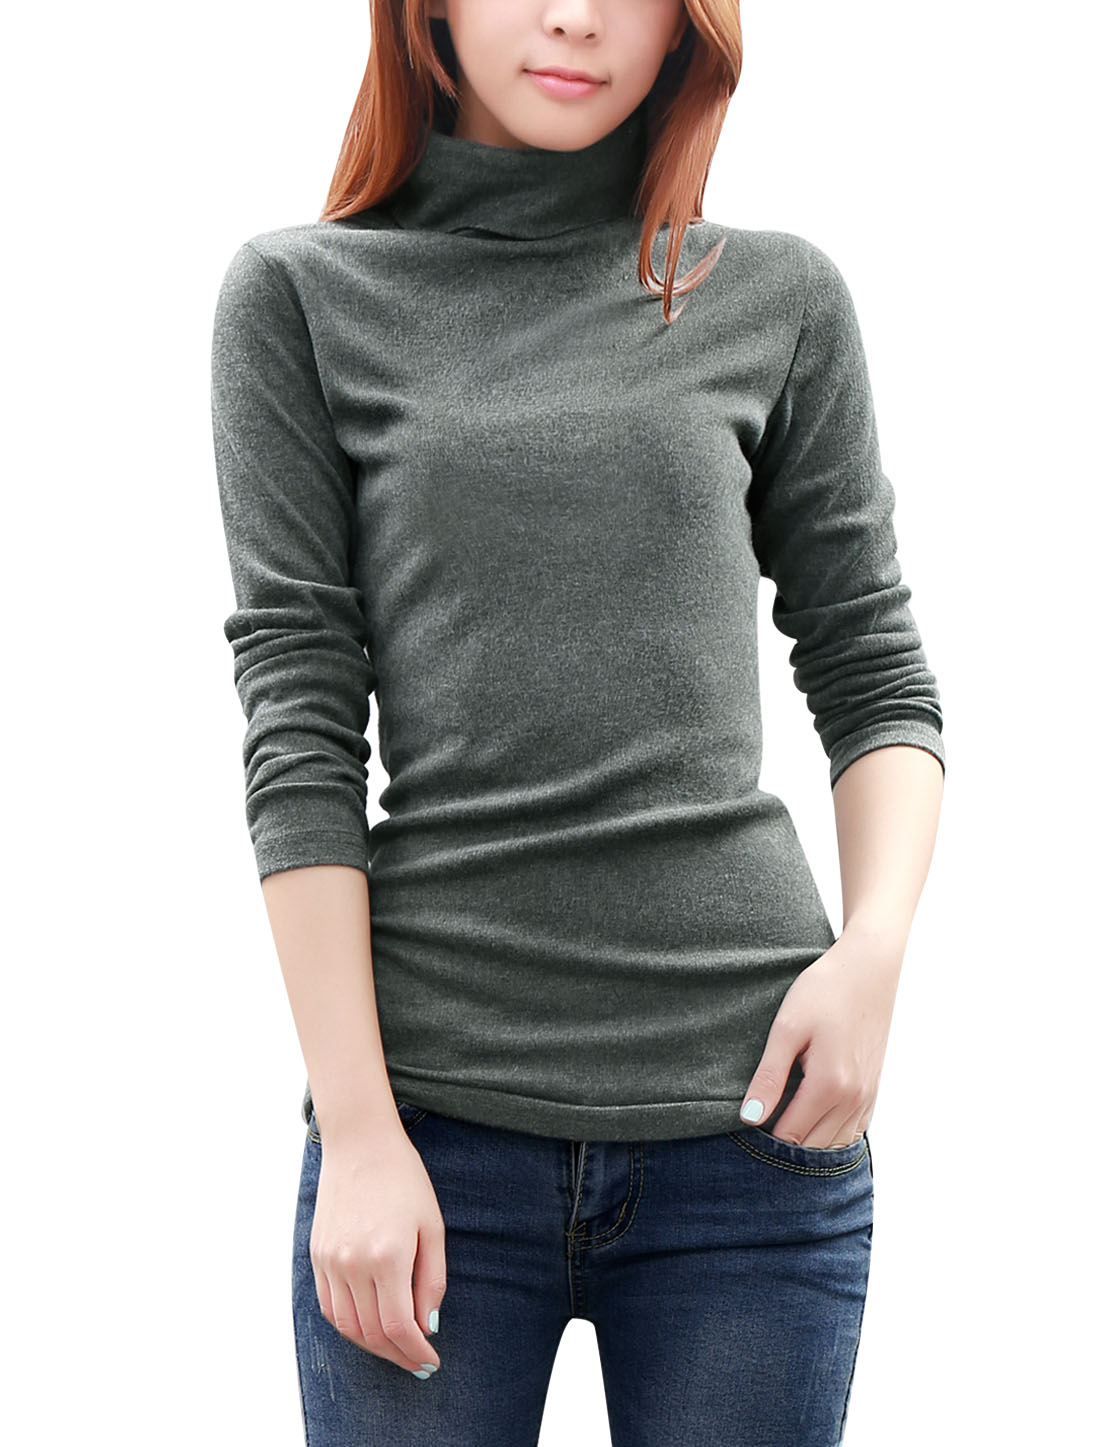 Ladies Slipover Design Long Sleeve Stretchy Knit Shirt Dark Gray M